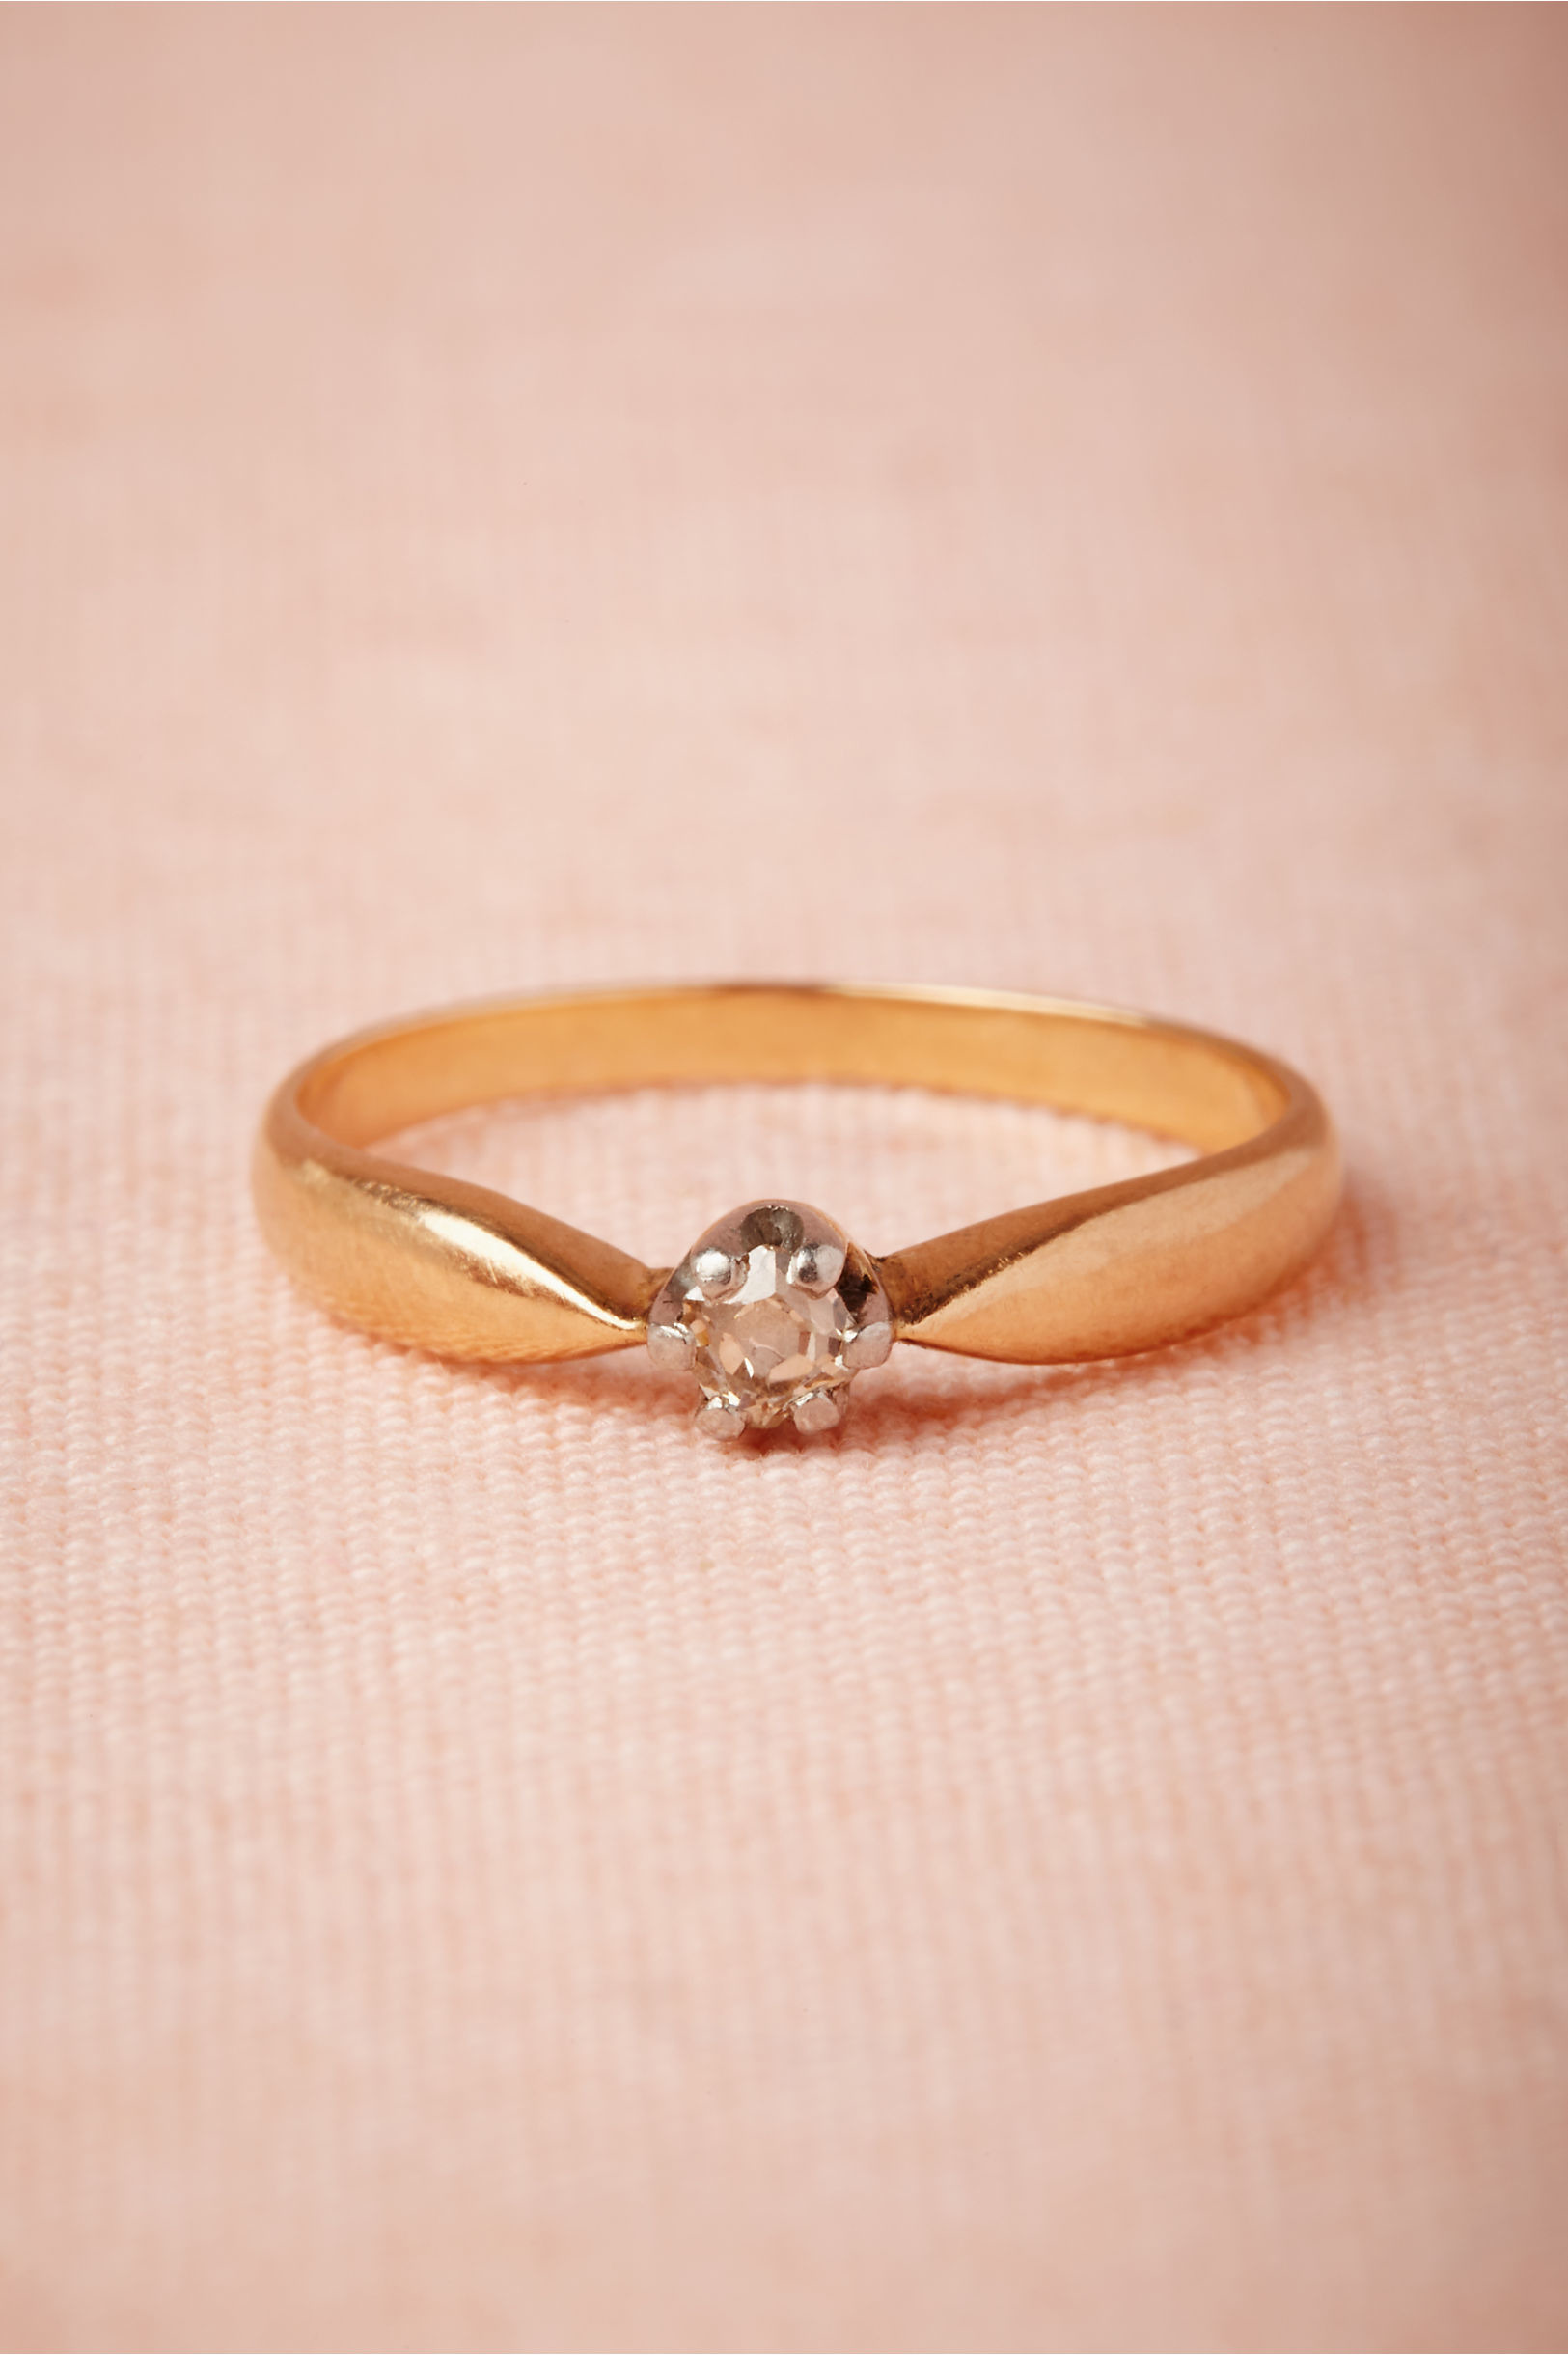 Engagement rings at every price - AOL Lifestyle